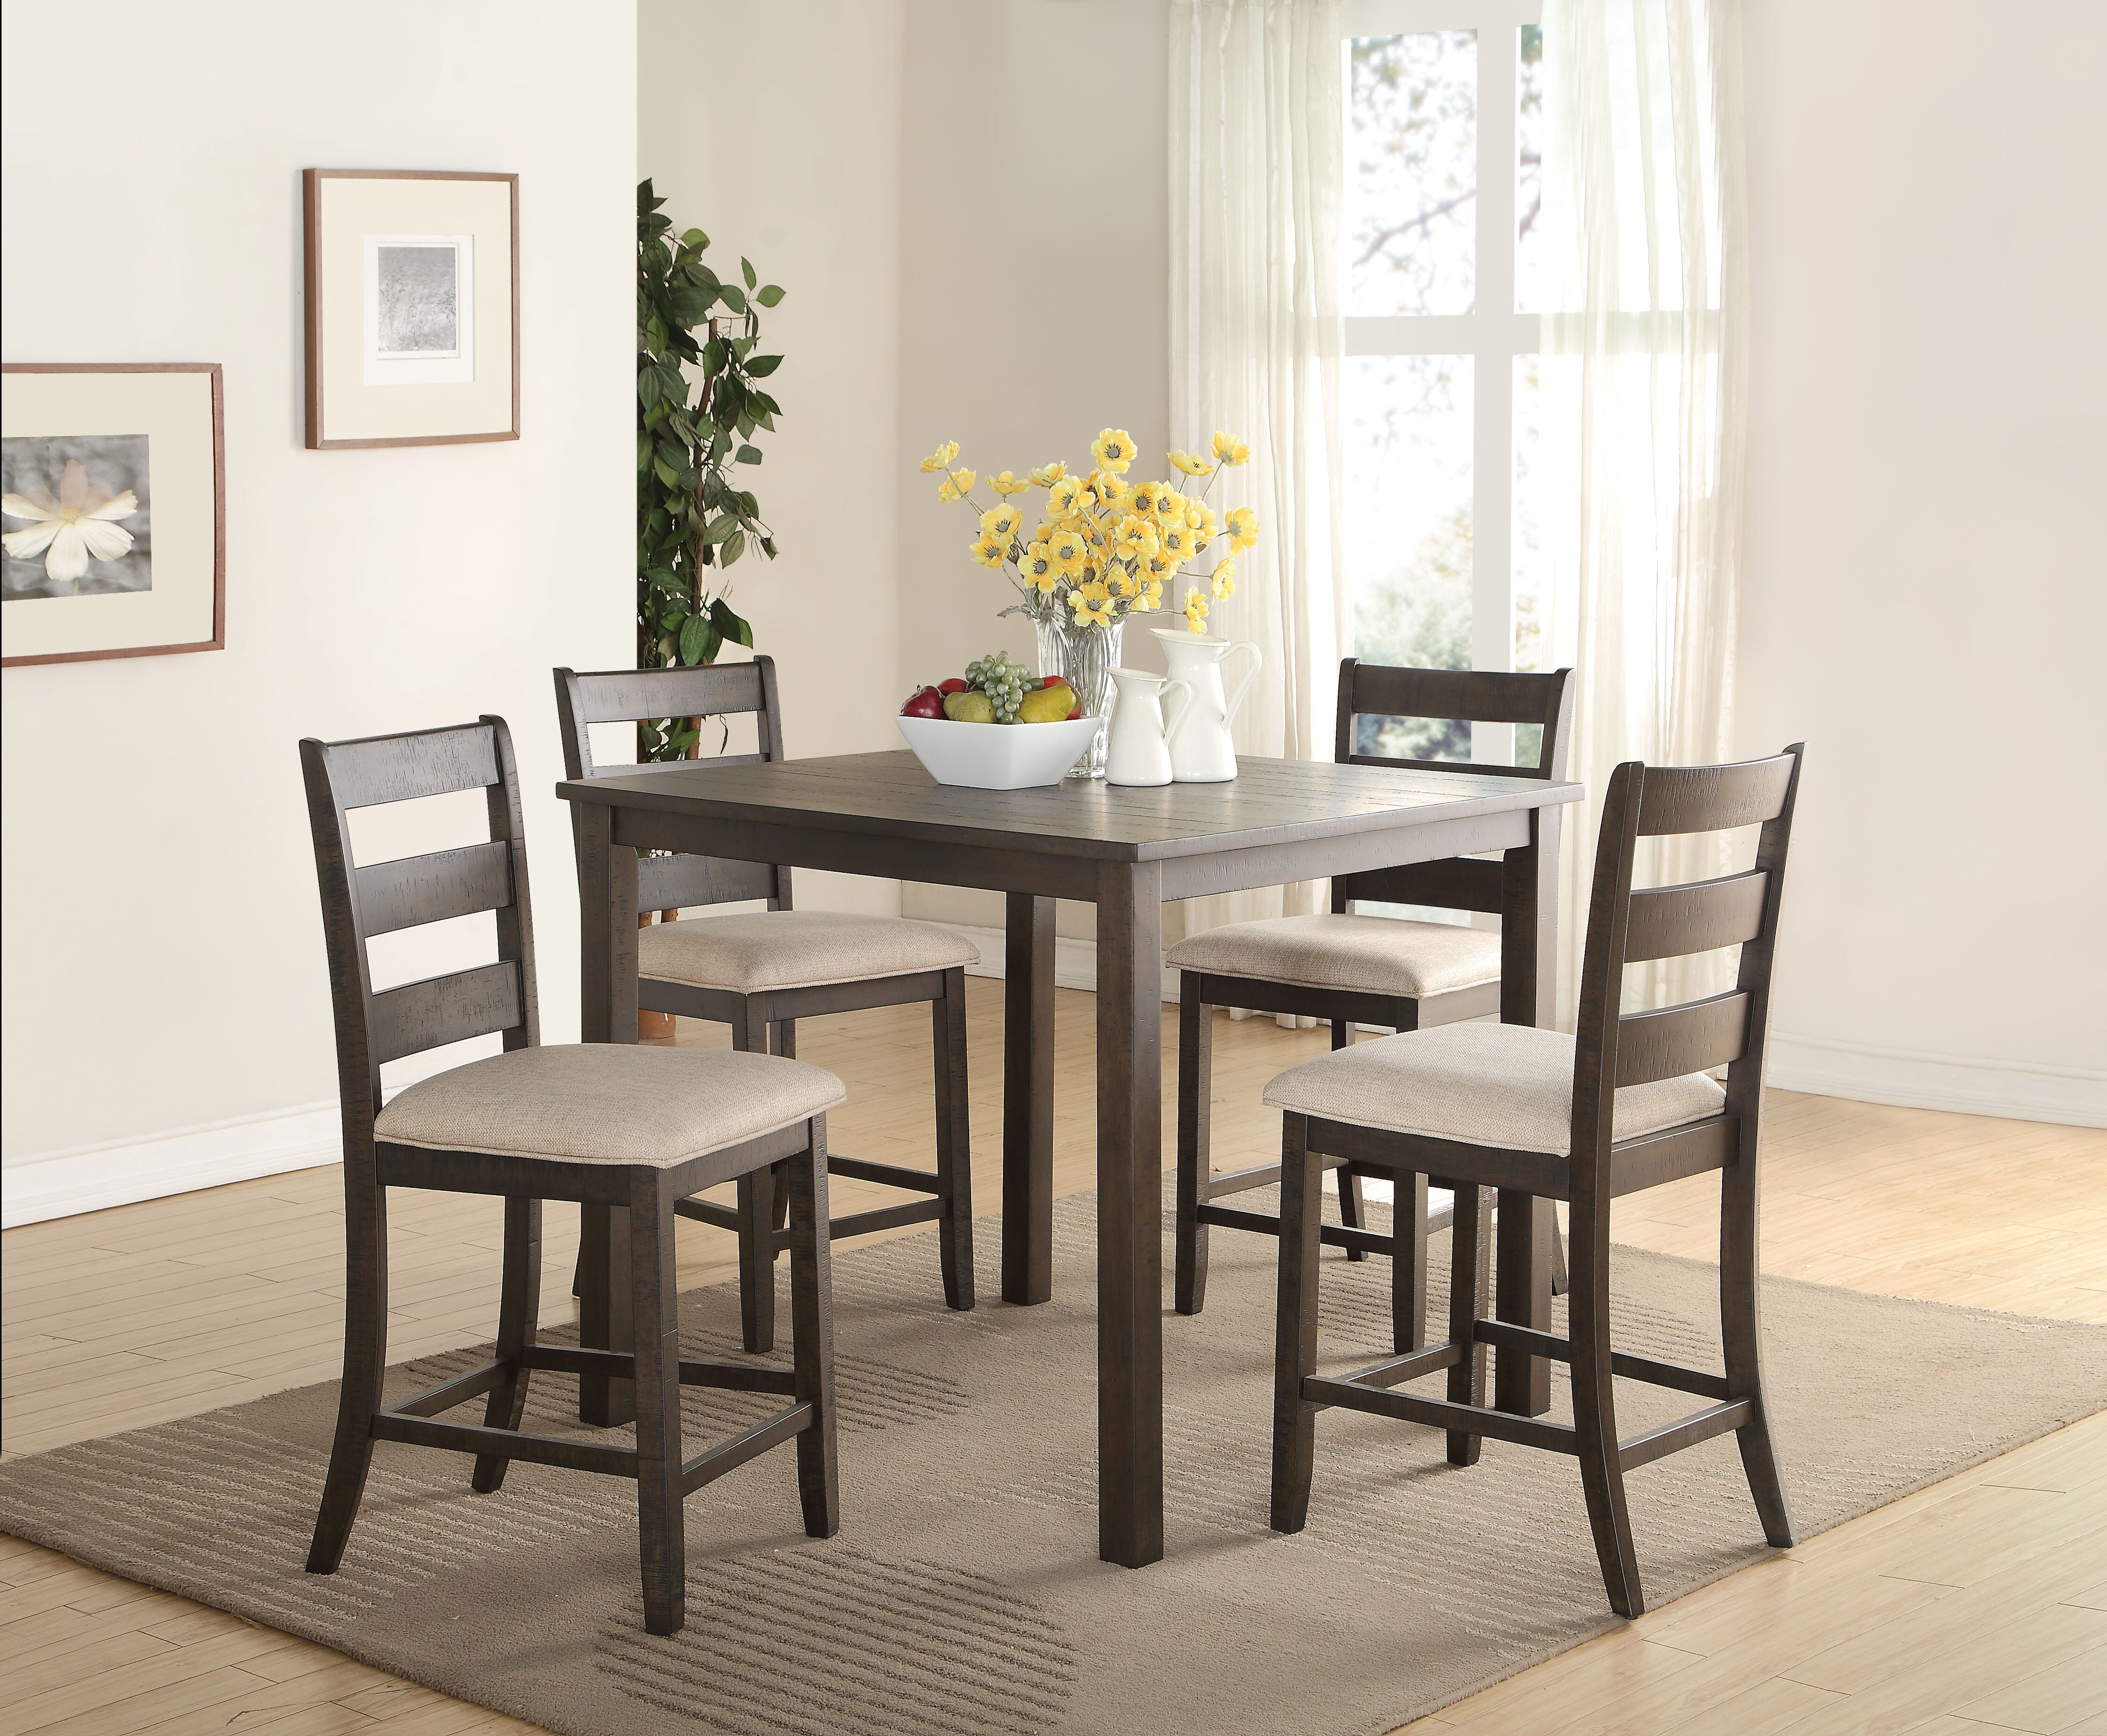 Fabulous Keesler 5 Piece Counter Height Dining Set Pdpeps Interior Chair Design Pdpepsorg